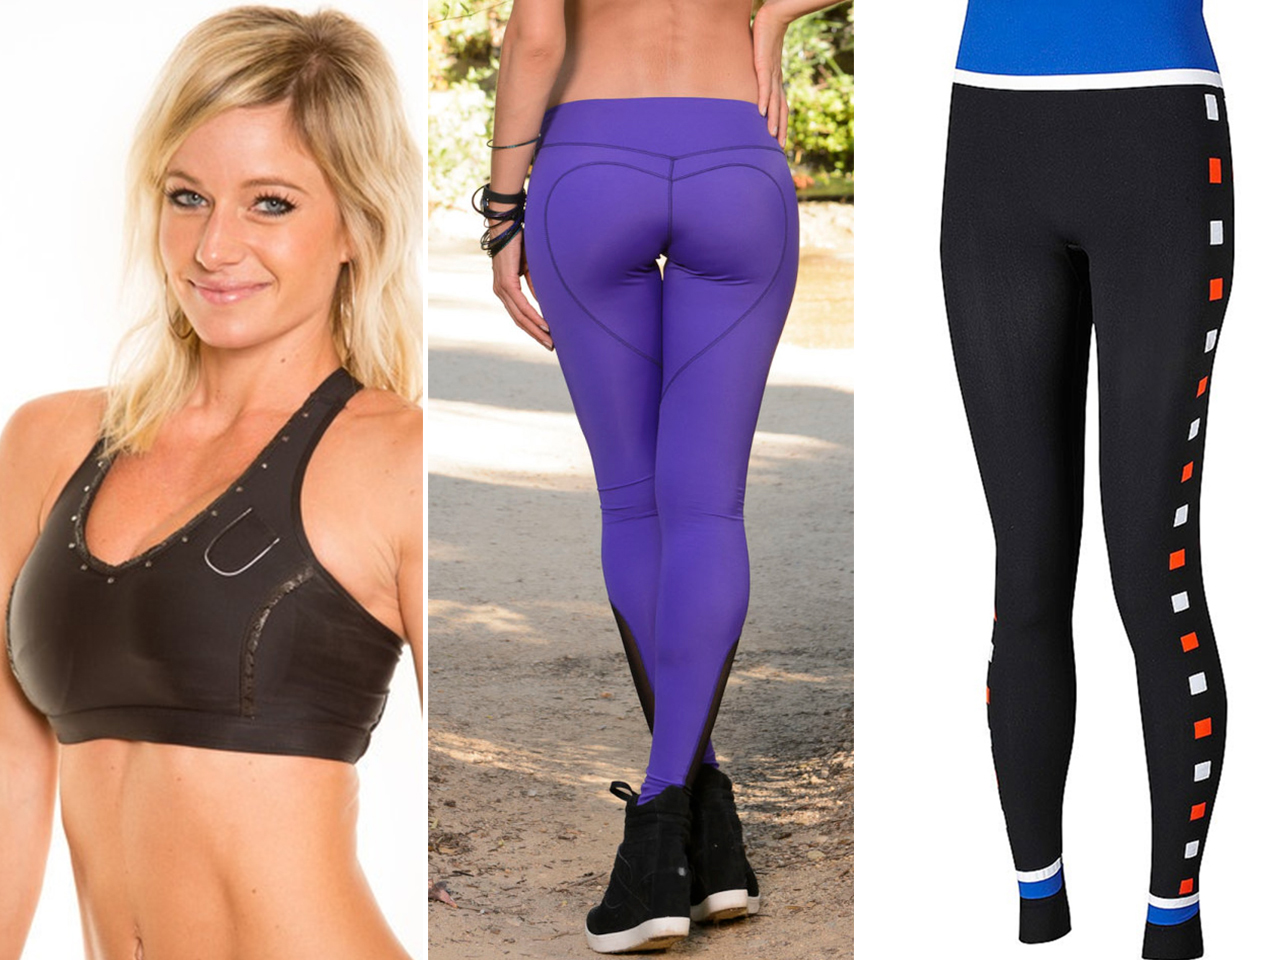 Sweat in style: 5 fashionable fitness lines - TODAY.com